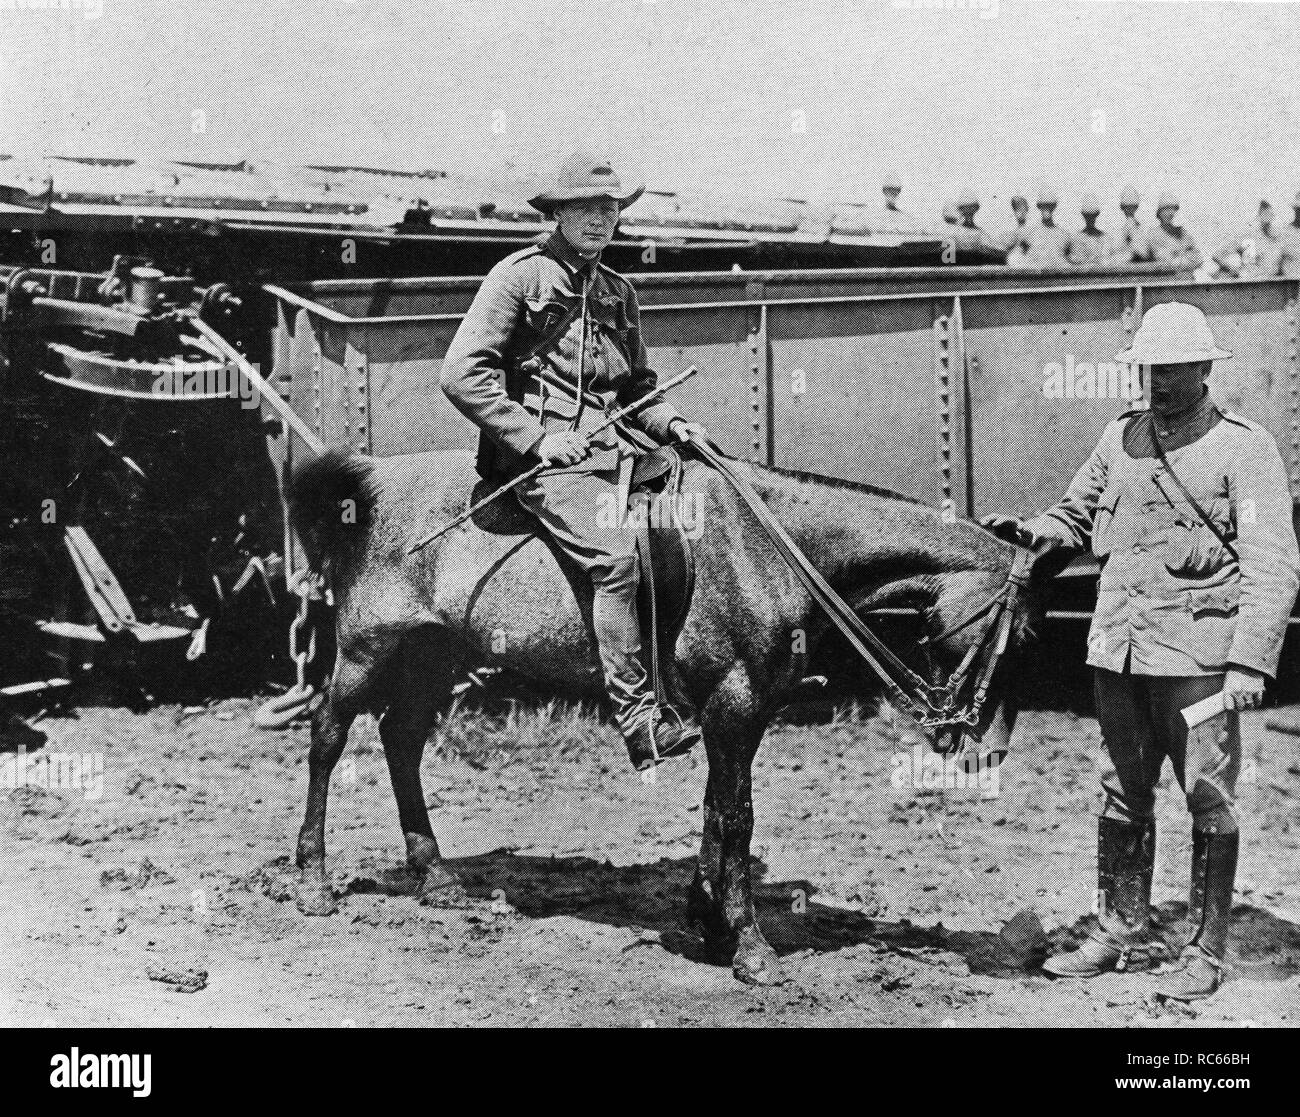 Winston Churchill in South Africa during the Boer War - Stock Image